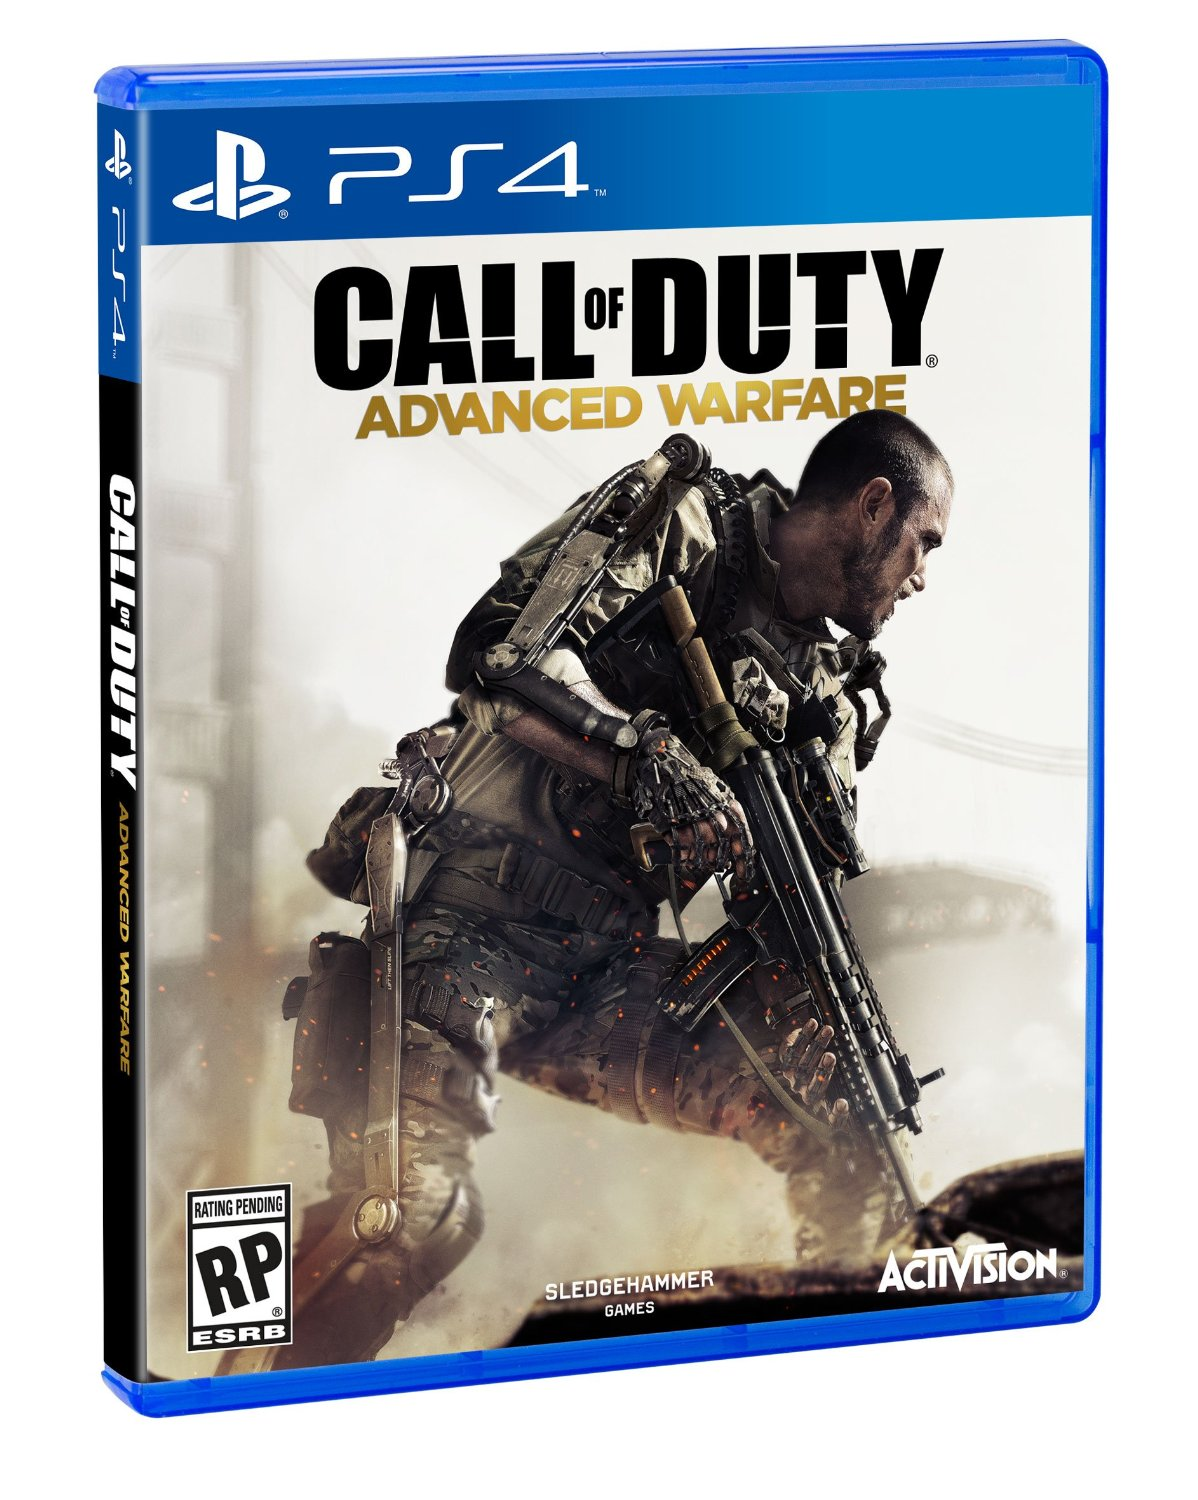 PS4 COD Call of Duty Advanced Warfare CODIGO POR EMAIL